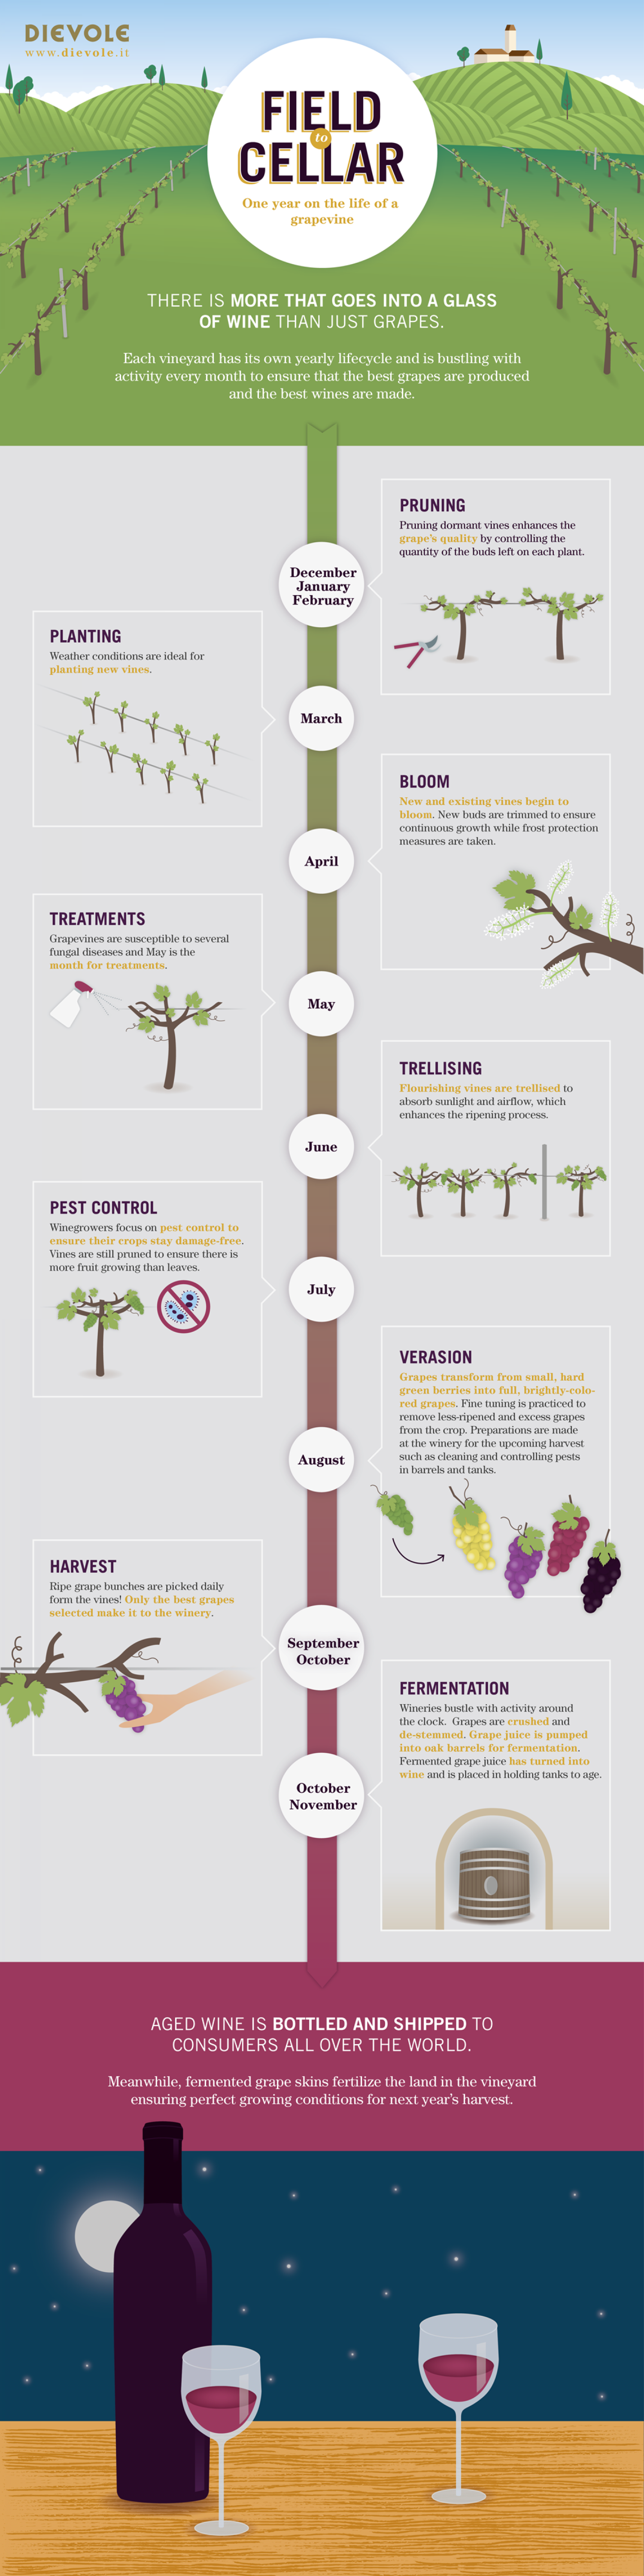 From field to cellar Infographic